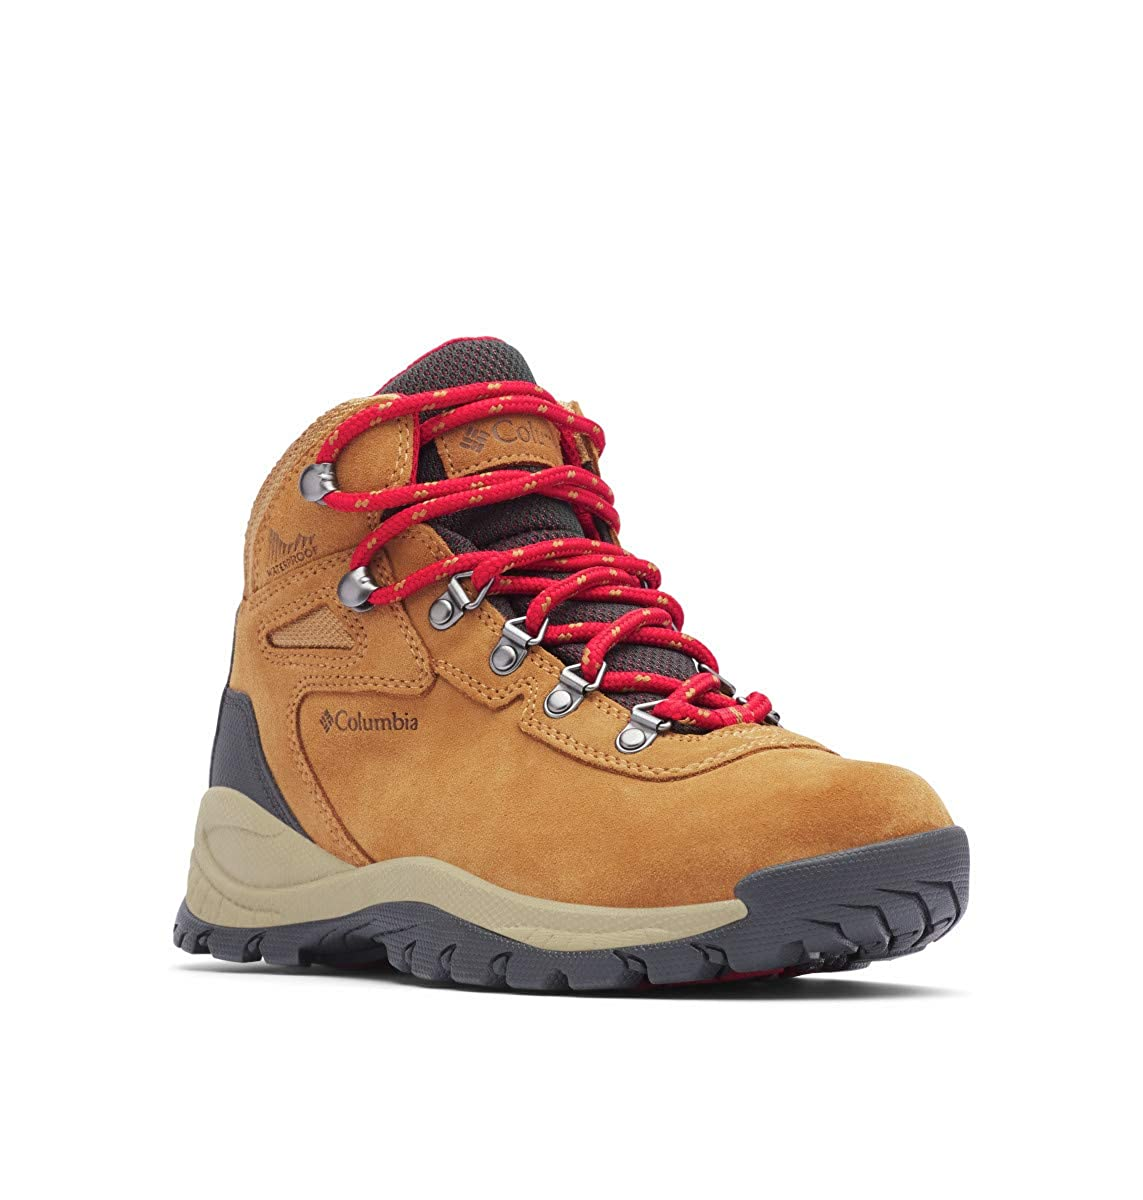 3c58b4b7639 Columbia Women's Newton Ridge Plus Waterproof Amped Hiking Boot